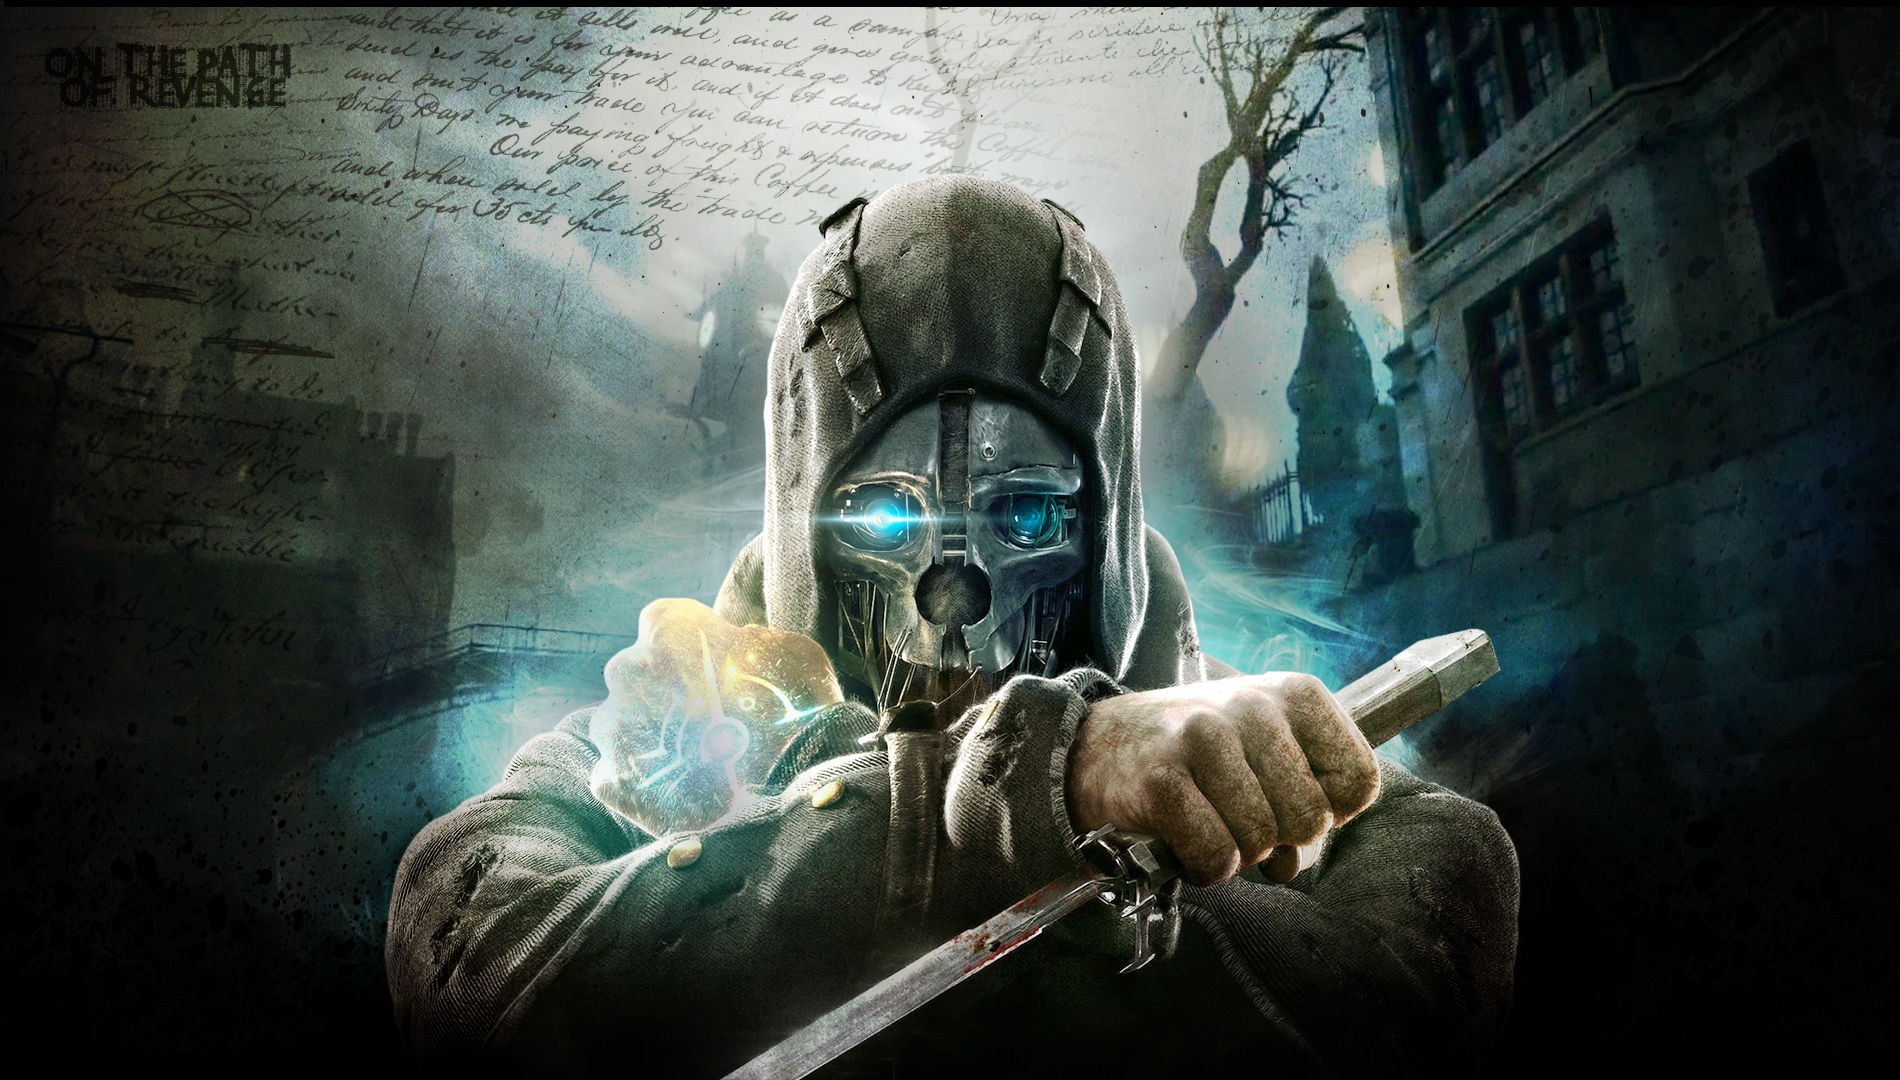 Dishonored warrior sci fi futuristic mask weapons knife text